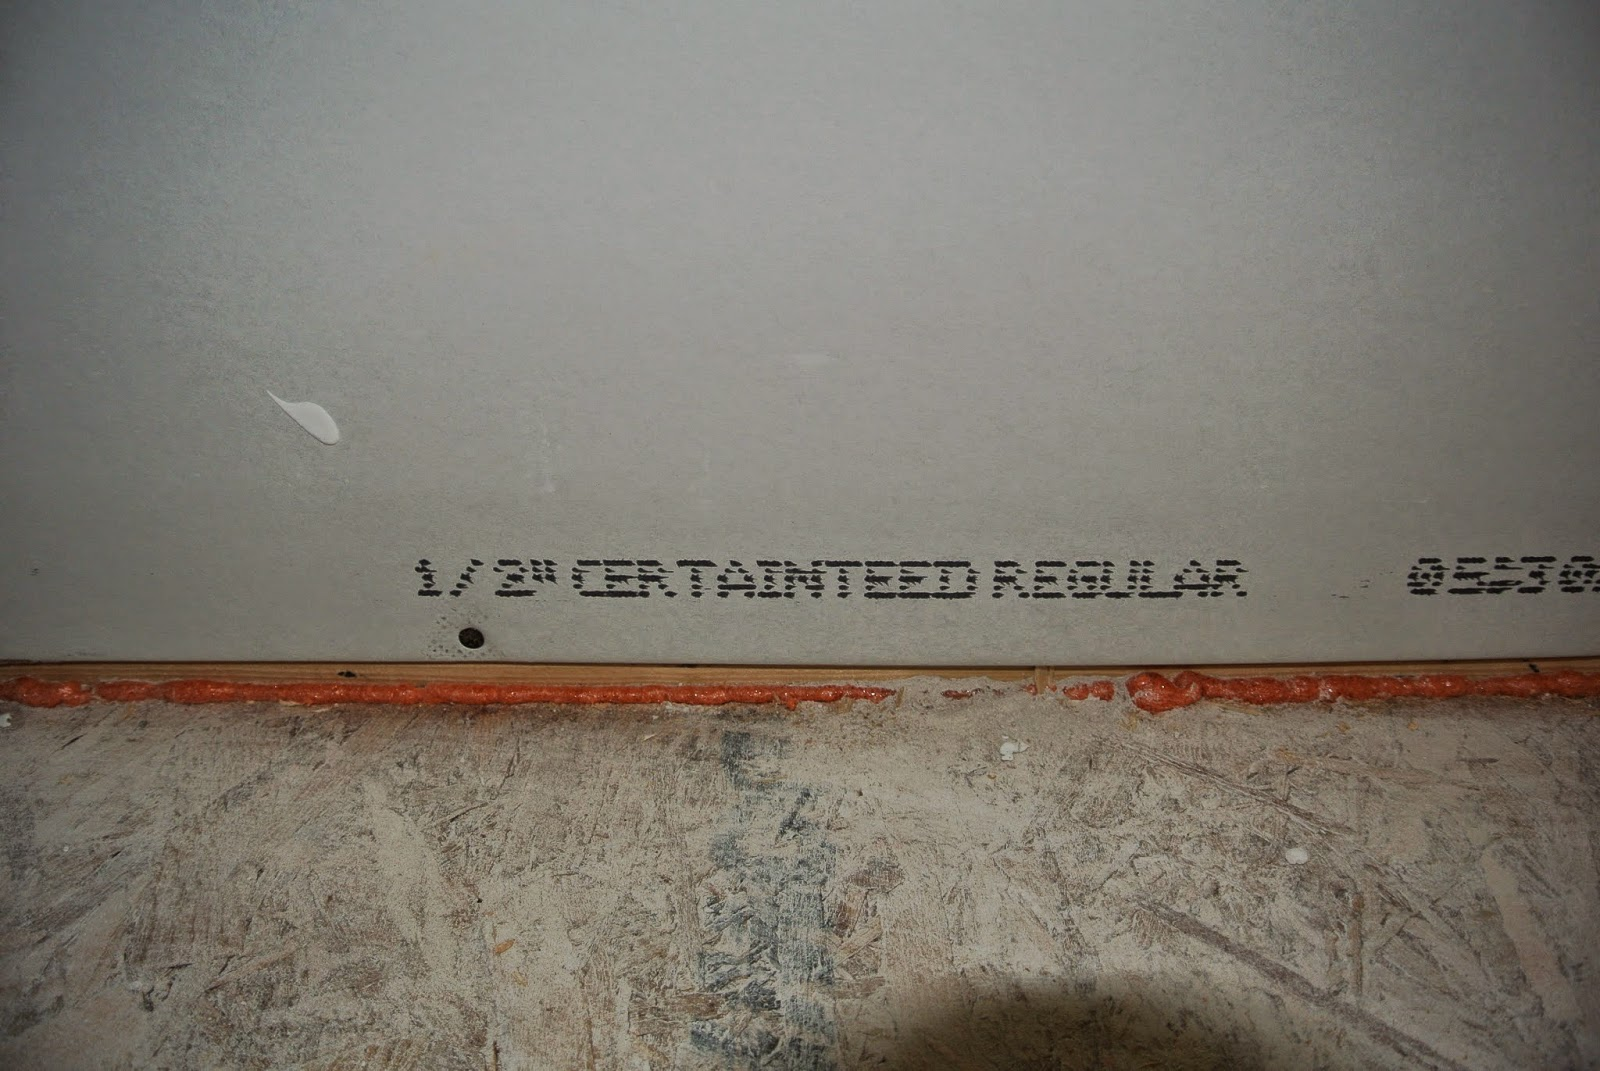 Picture of label on sheet rock indicating a half of an inch